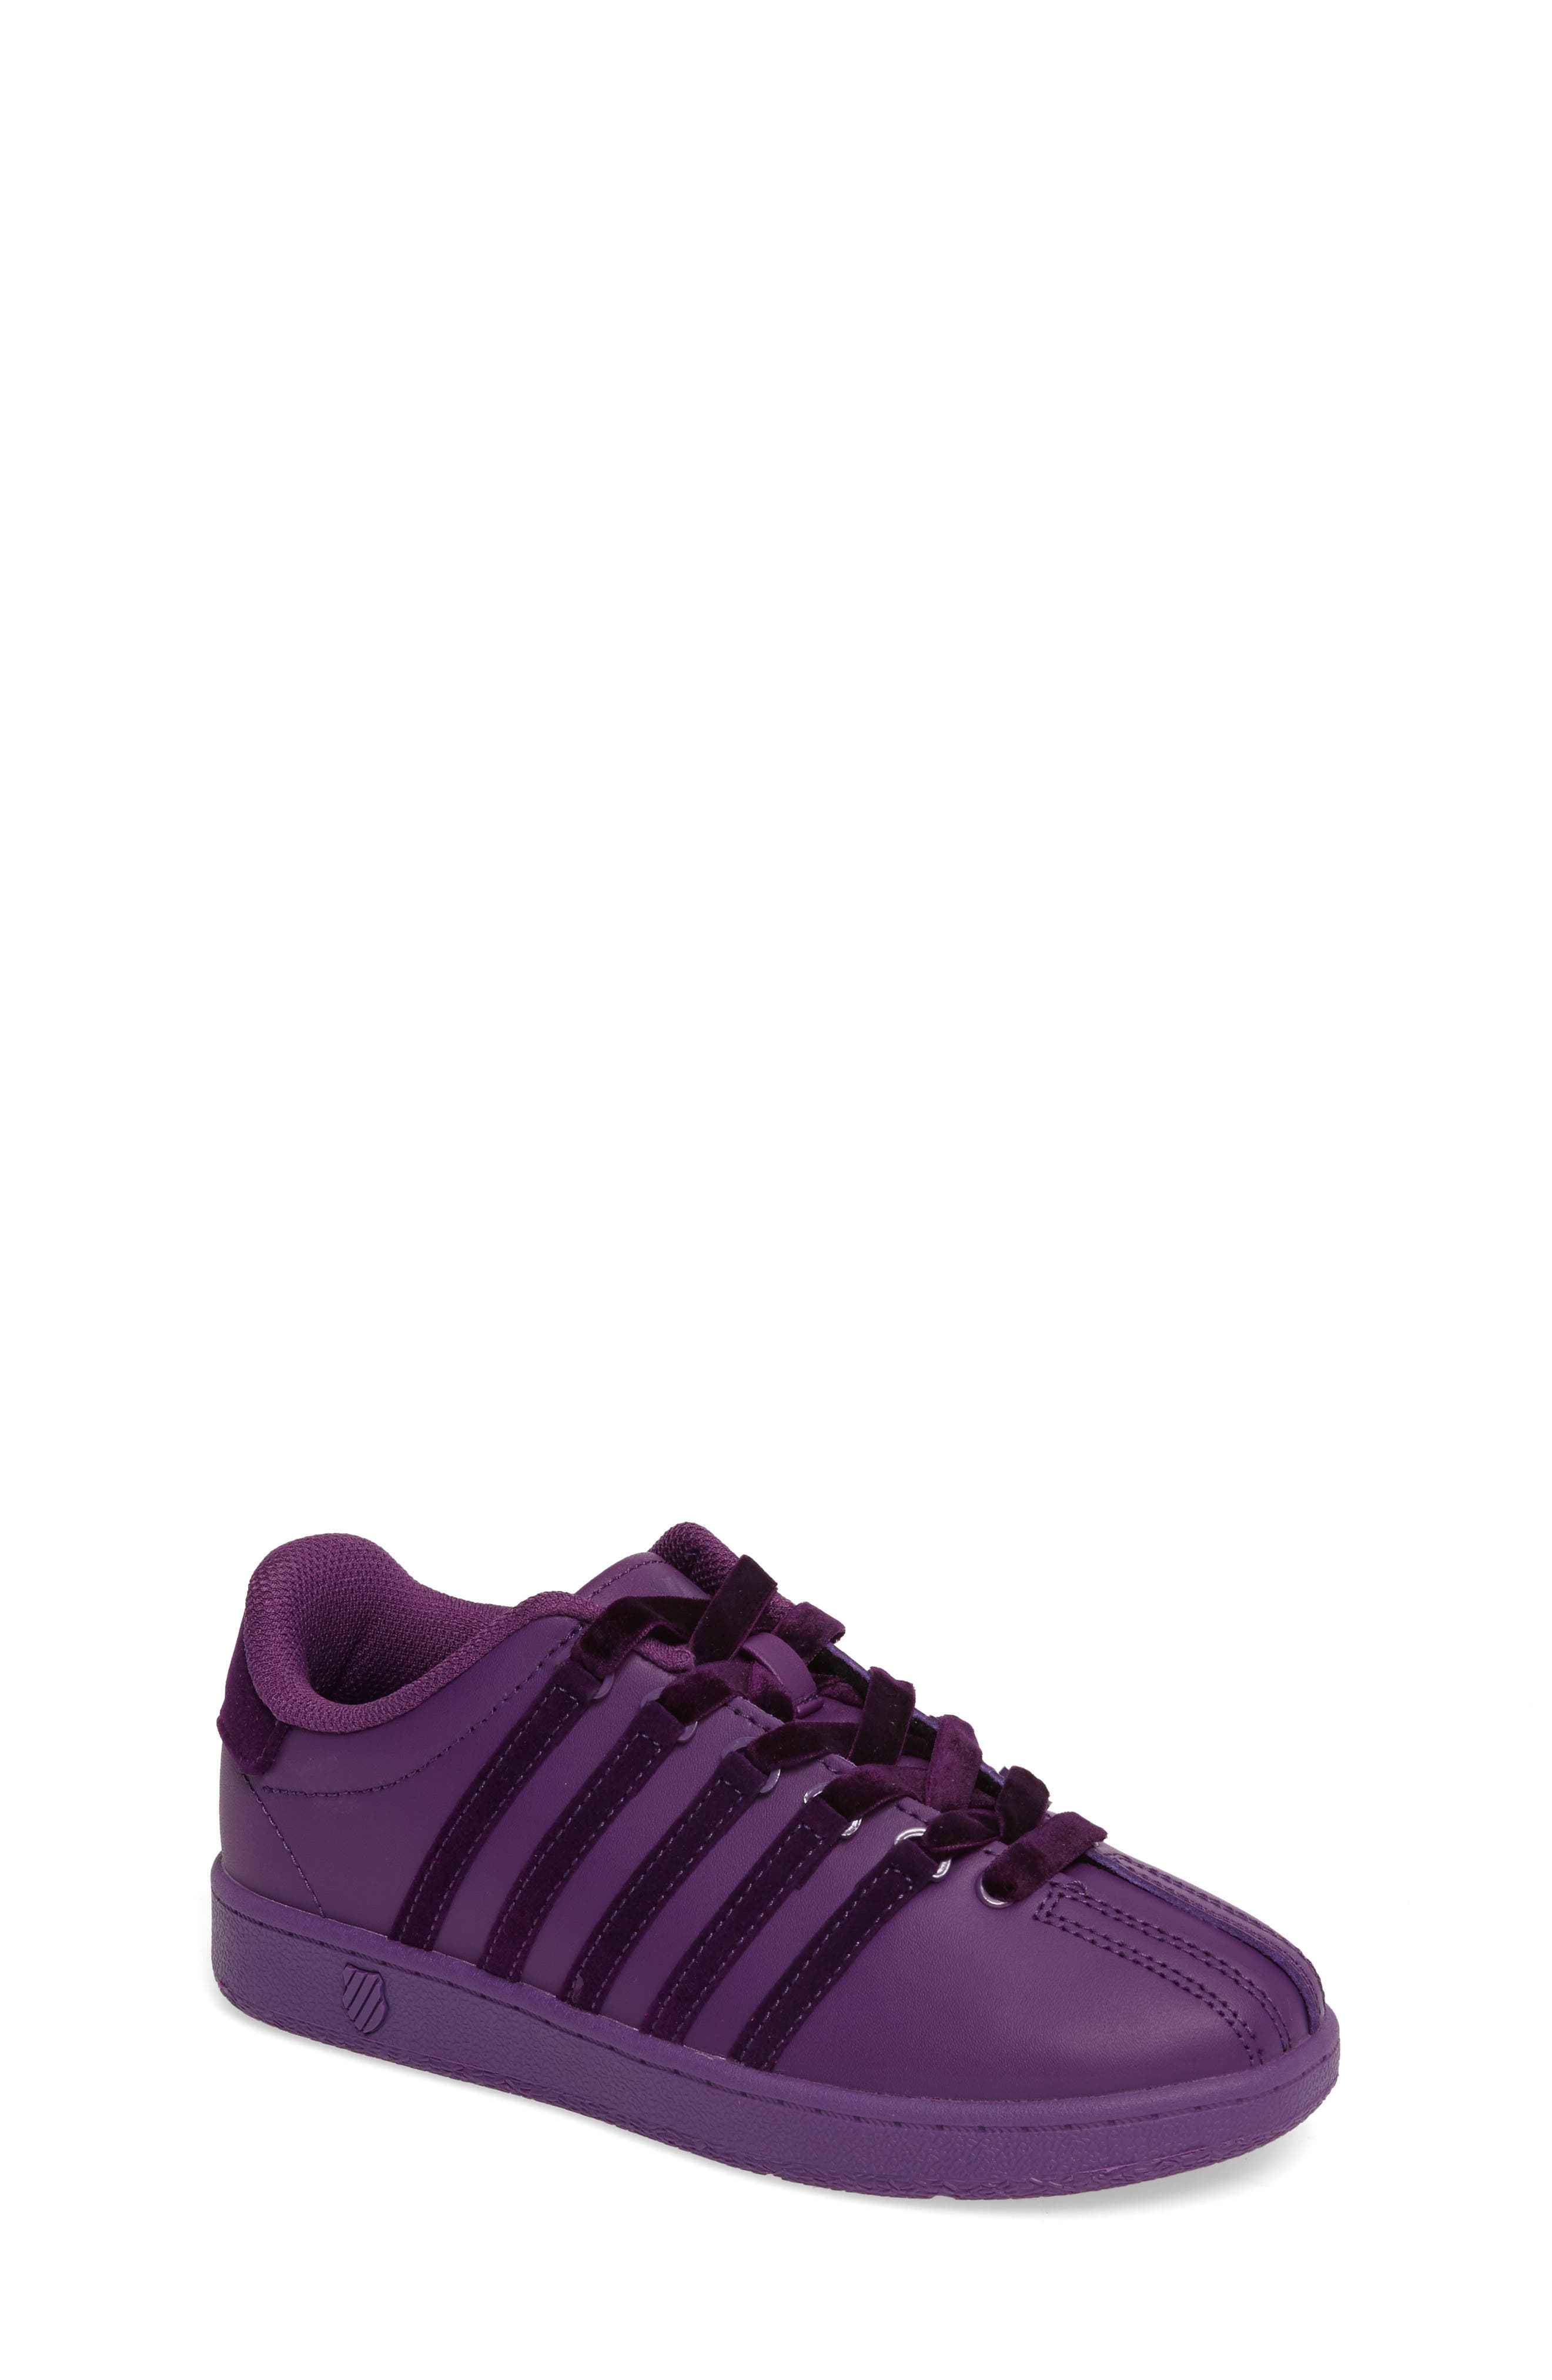 Classic VN Sneaker,                         Main,                         color, Majesty